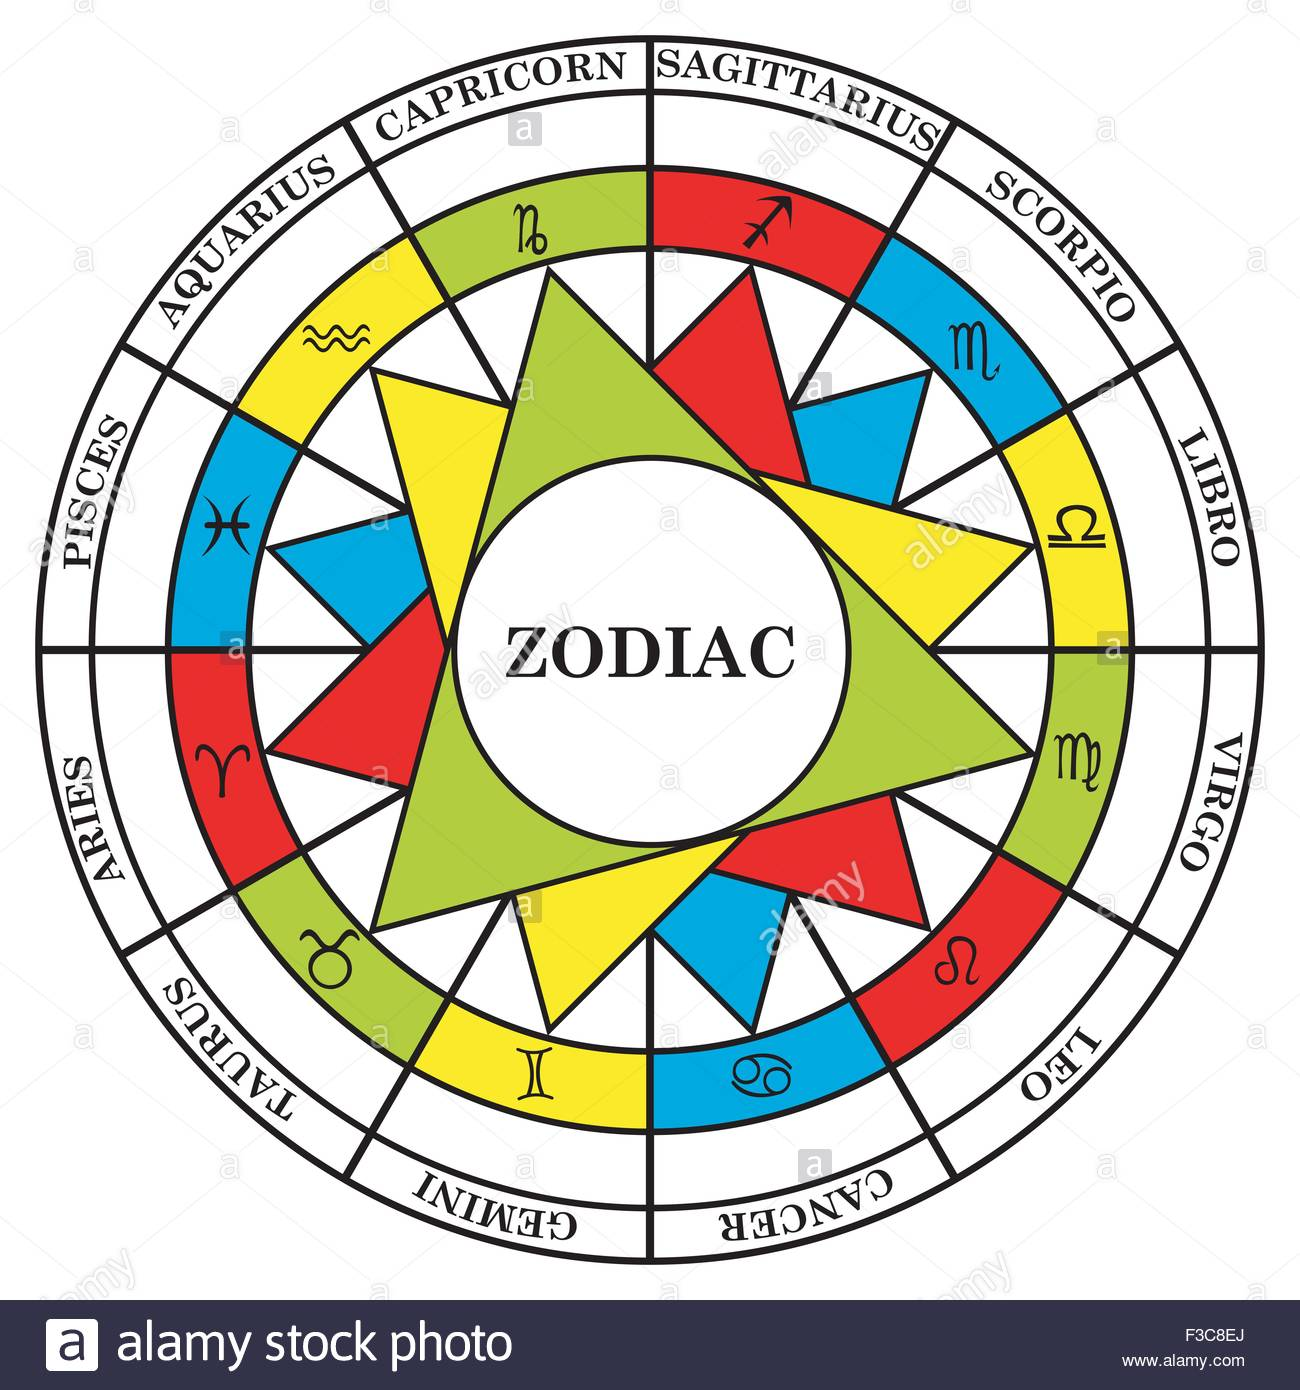 Free astrology charts images chart design ideas draconic astrology chart free image collections free any chart free astrology chart reading images free any nvjuhfo Gallery